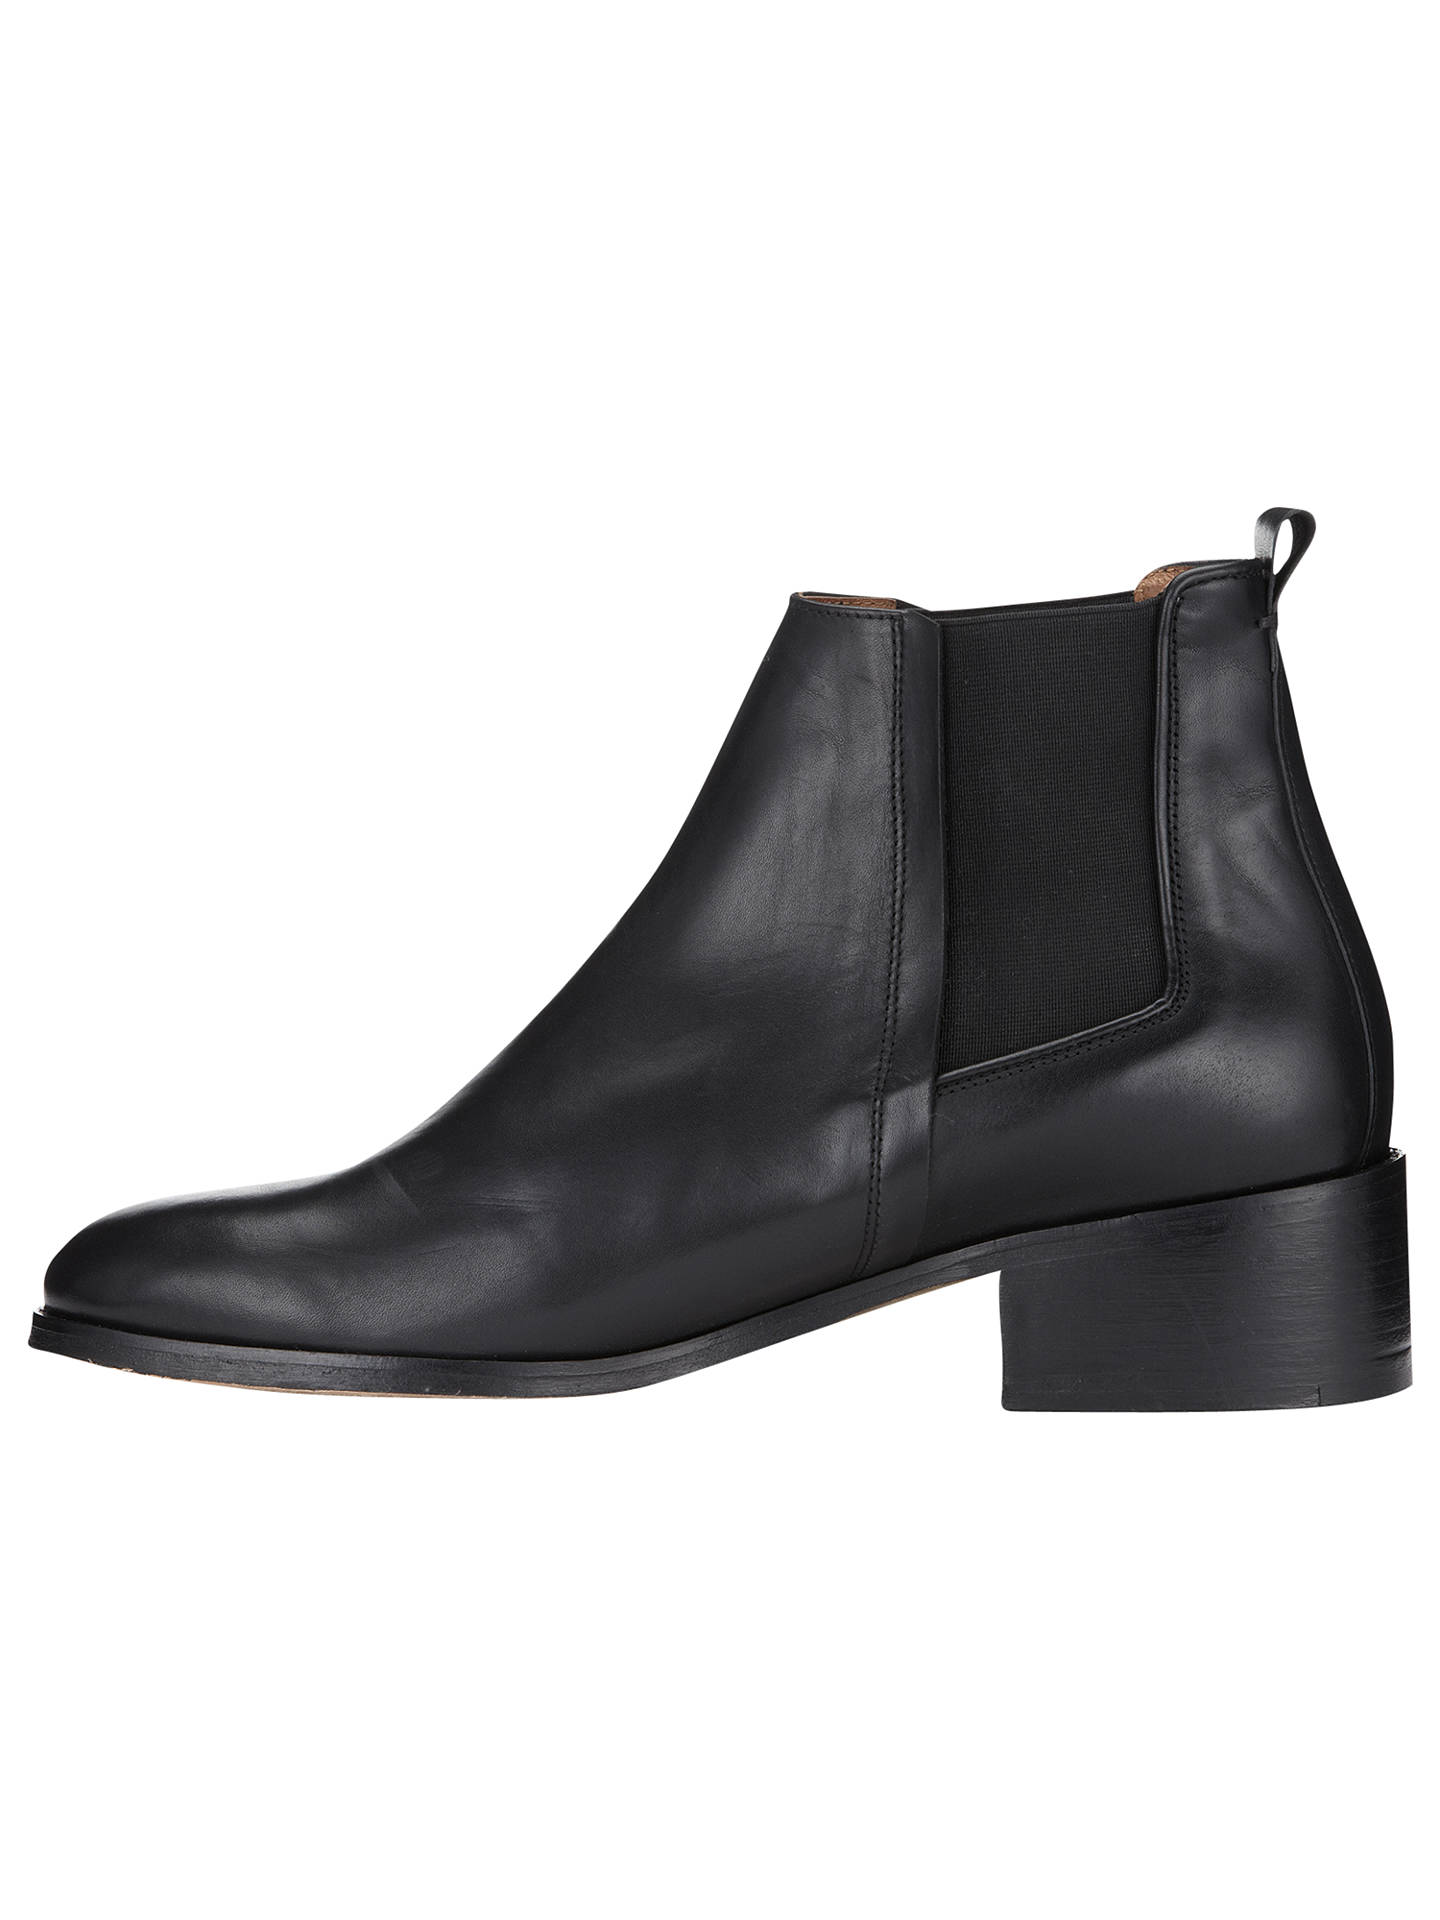 Whistles Beaufort Chelsea Ankle Boots | Black Leather at